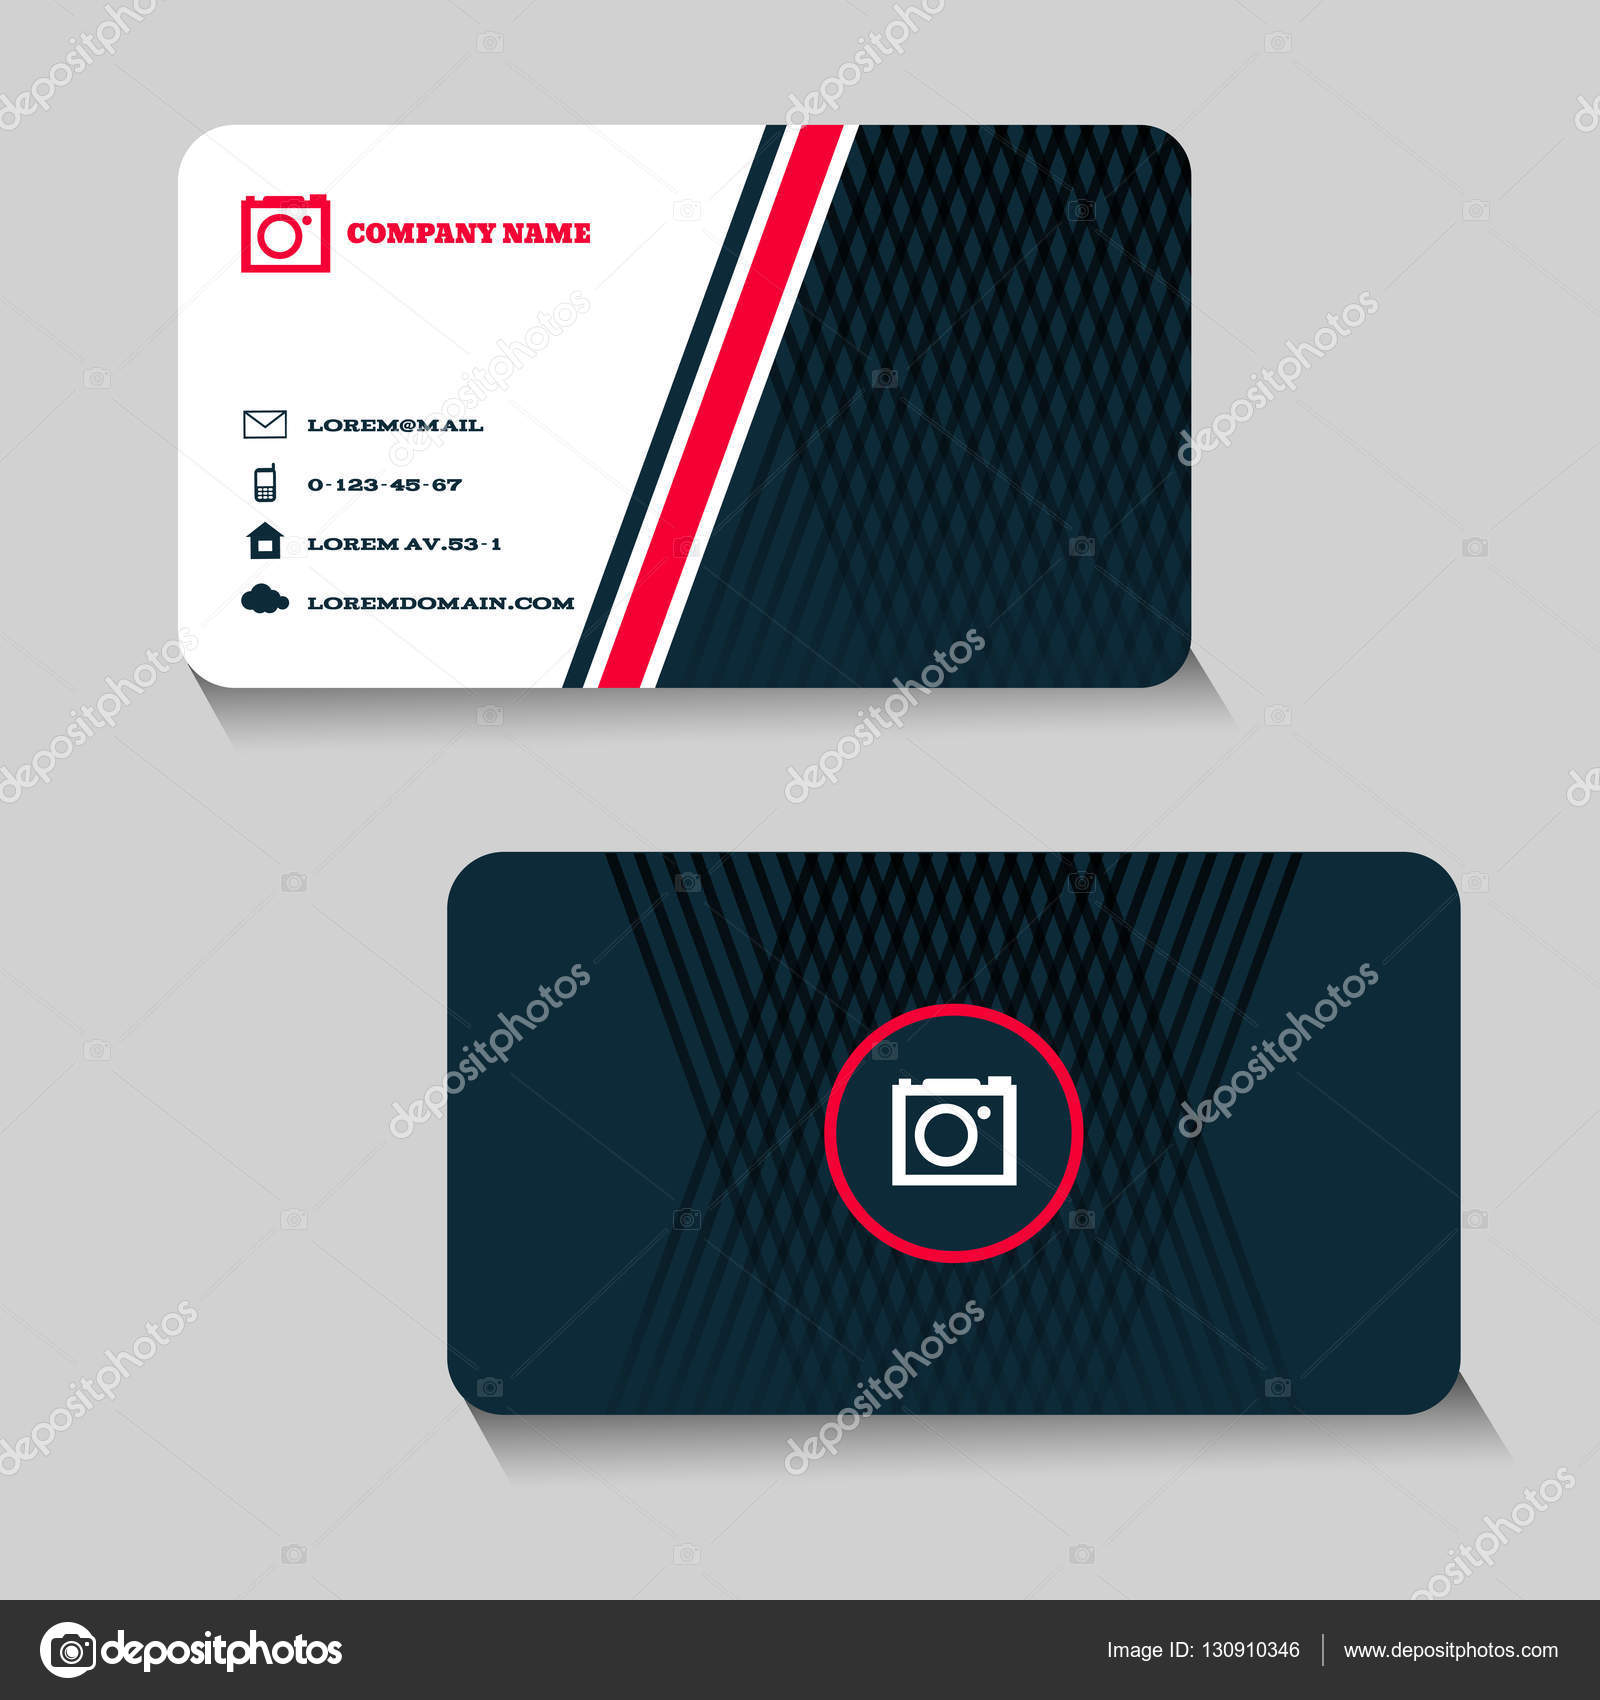 Creatif Et Propre Business Card Template Design Vectoriel Eps 10